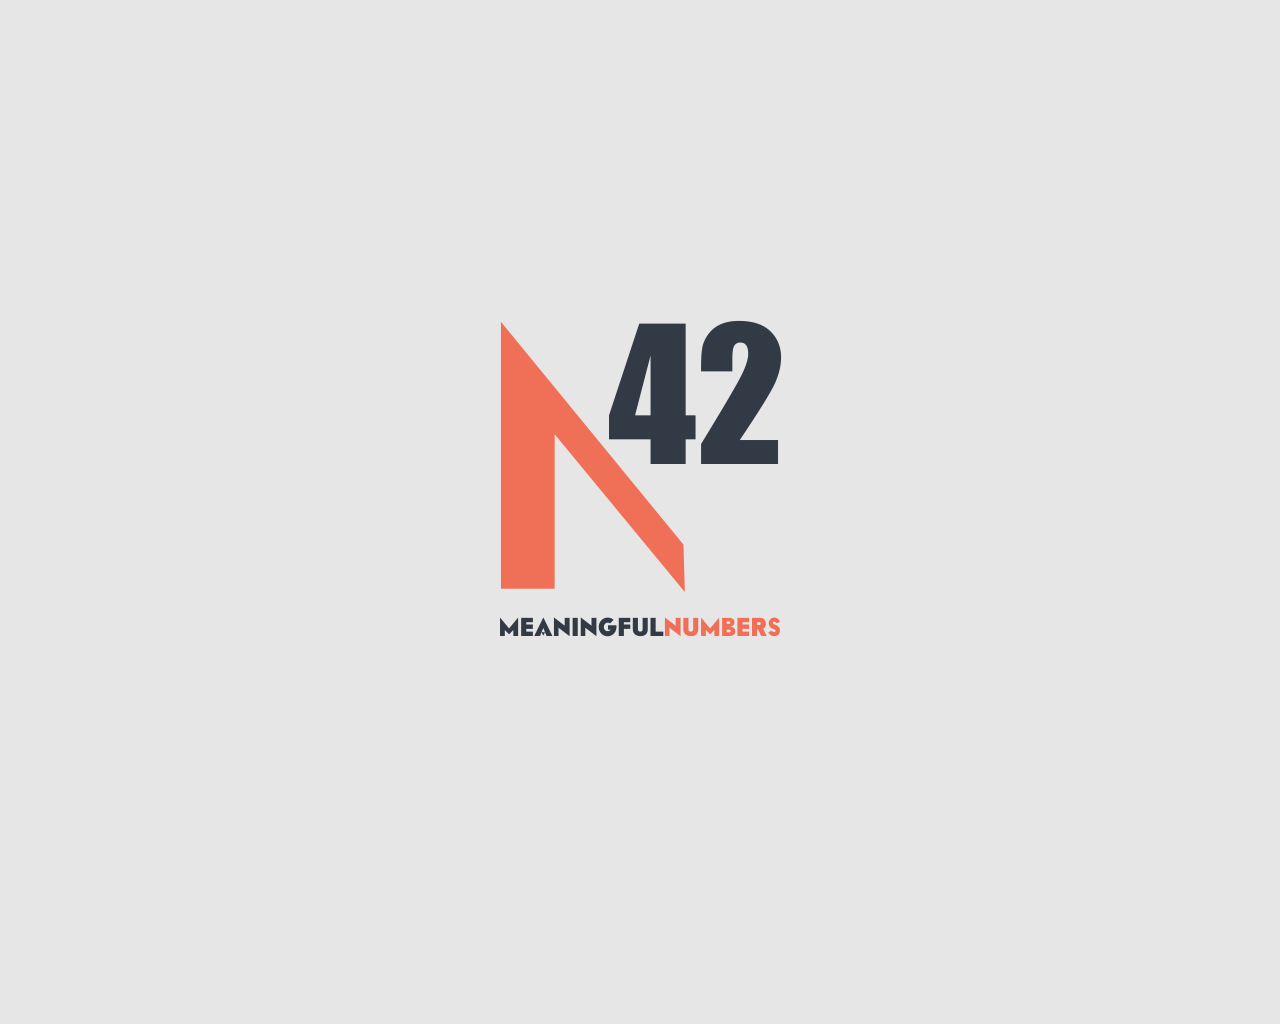 Logo Design by Q_Division_Designs - Entry No. 65 in the Logo Design Contest Artistic Logo Design for Number 42.